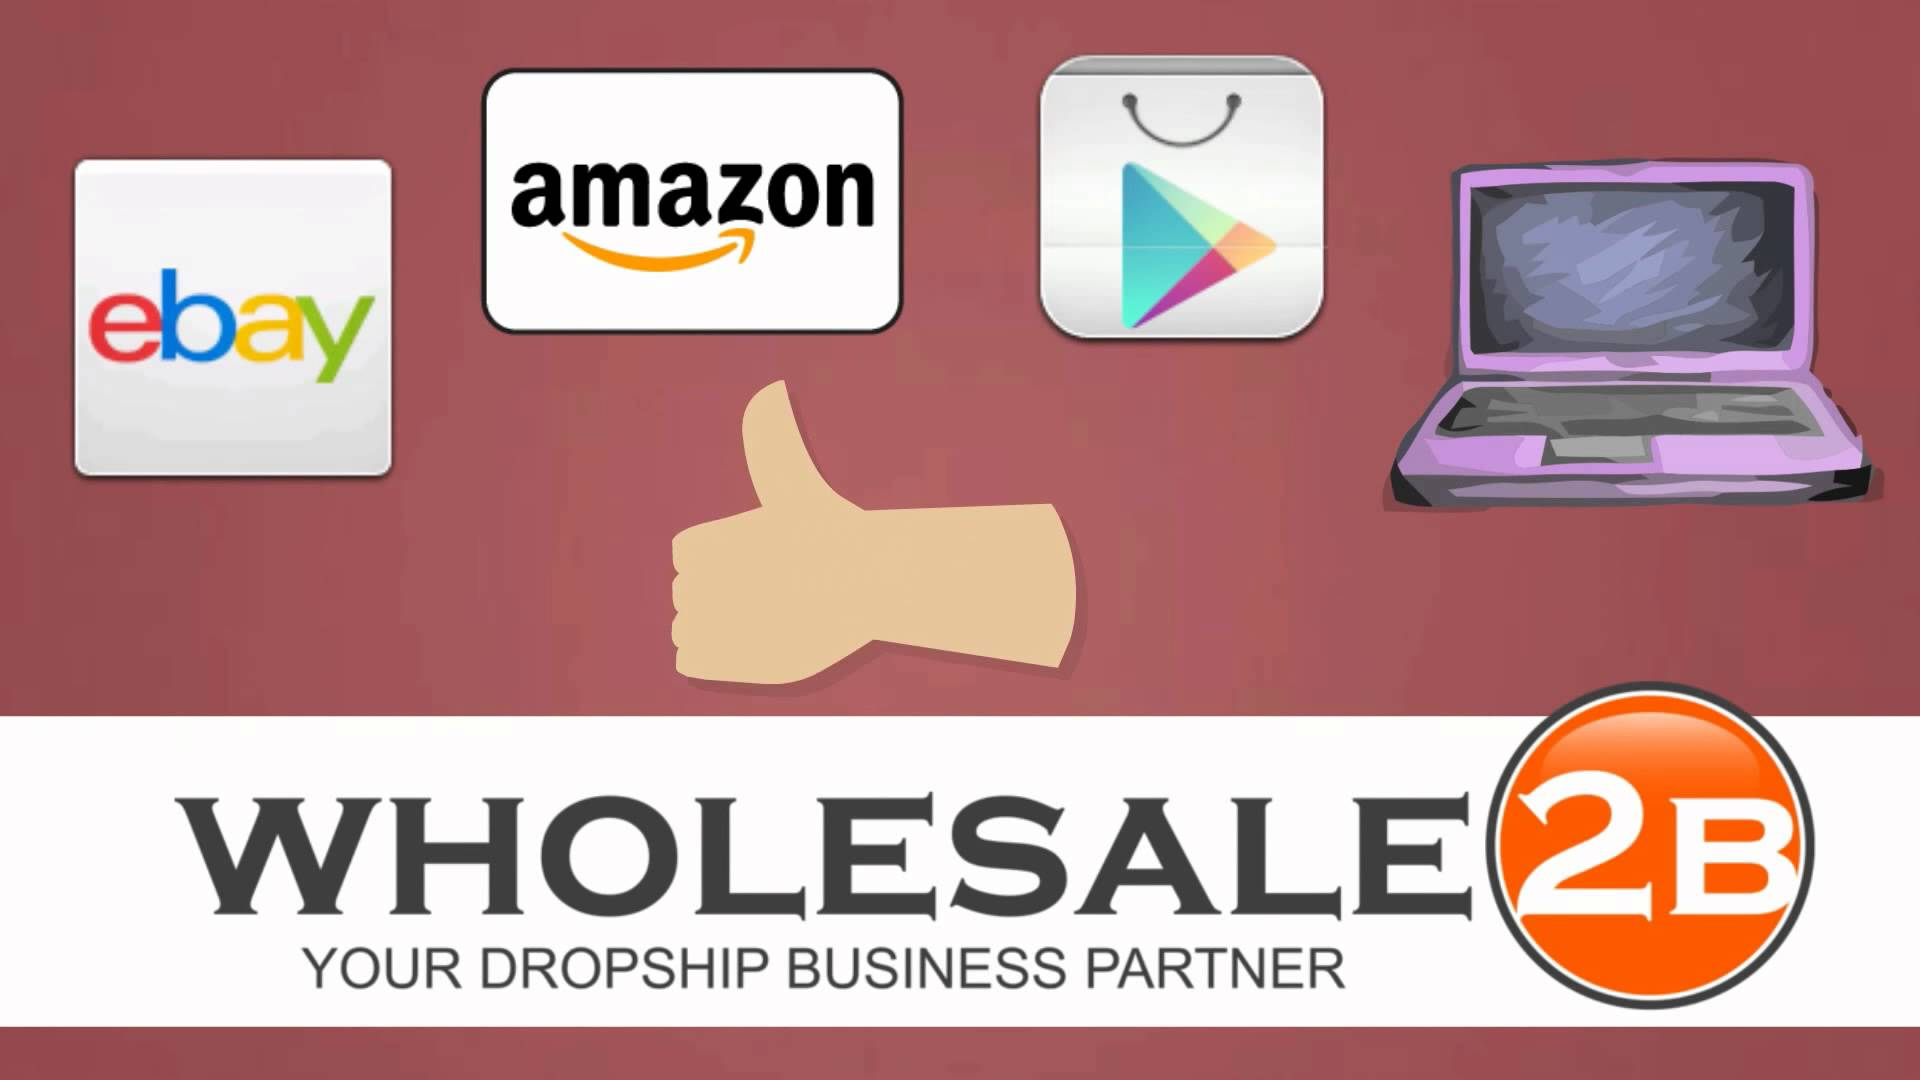 How To Make Sales on Amazon Using Wholesale2b